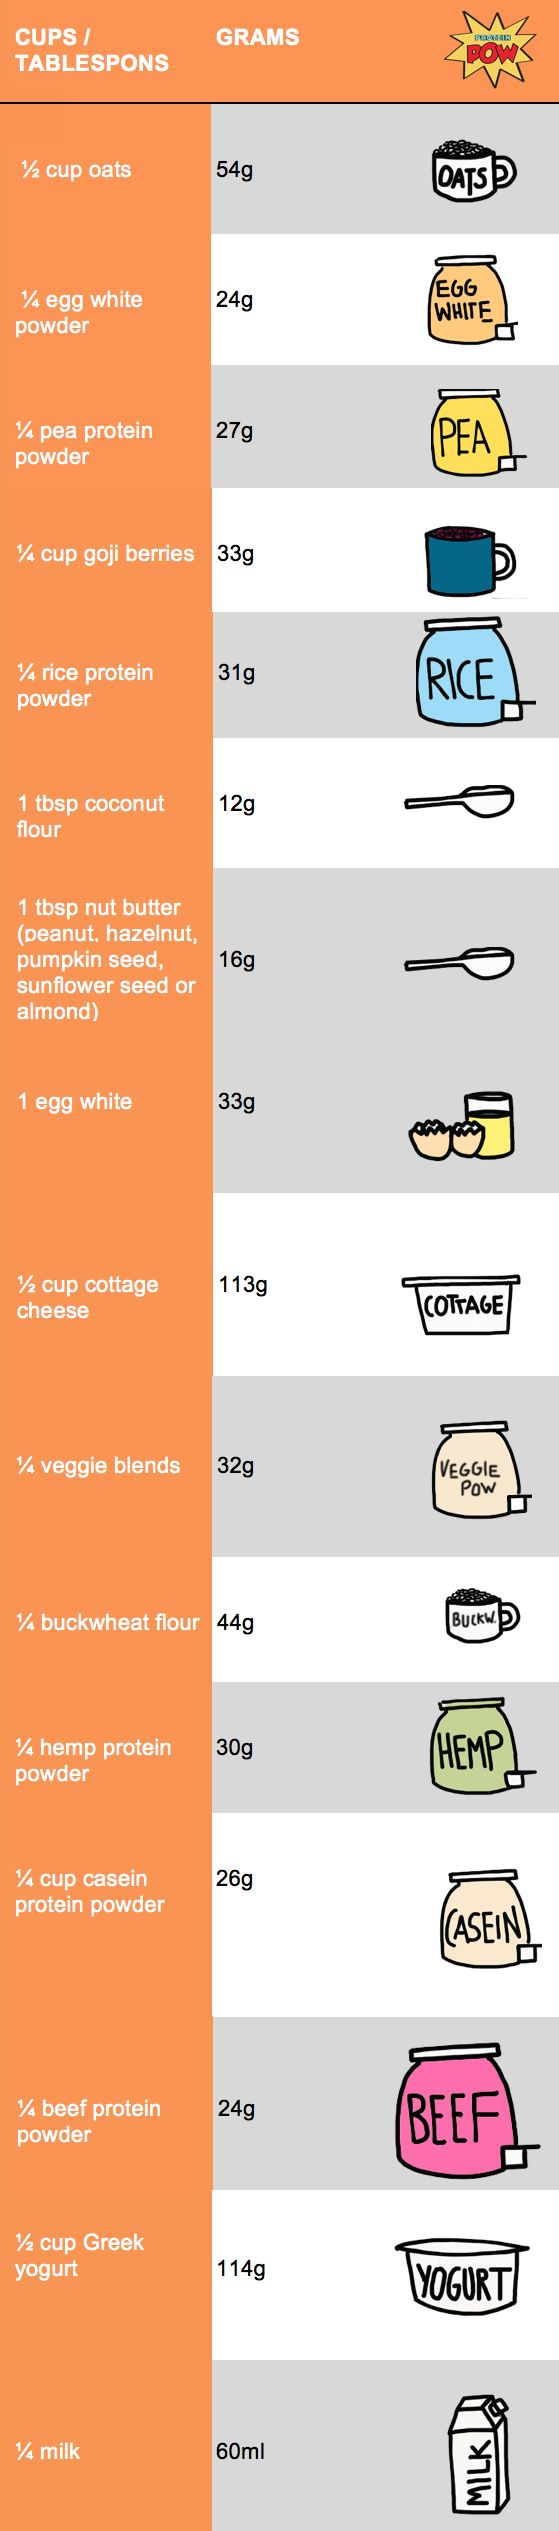 Common Protein Pow Measurement Conversions: From Cups/Tablespoons to Grams and Millilitres!